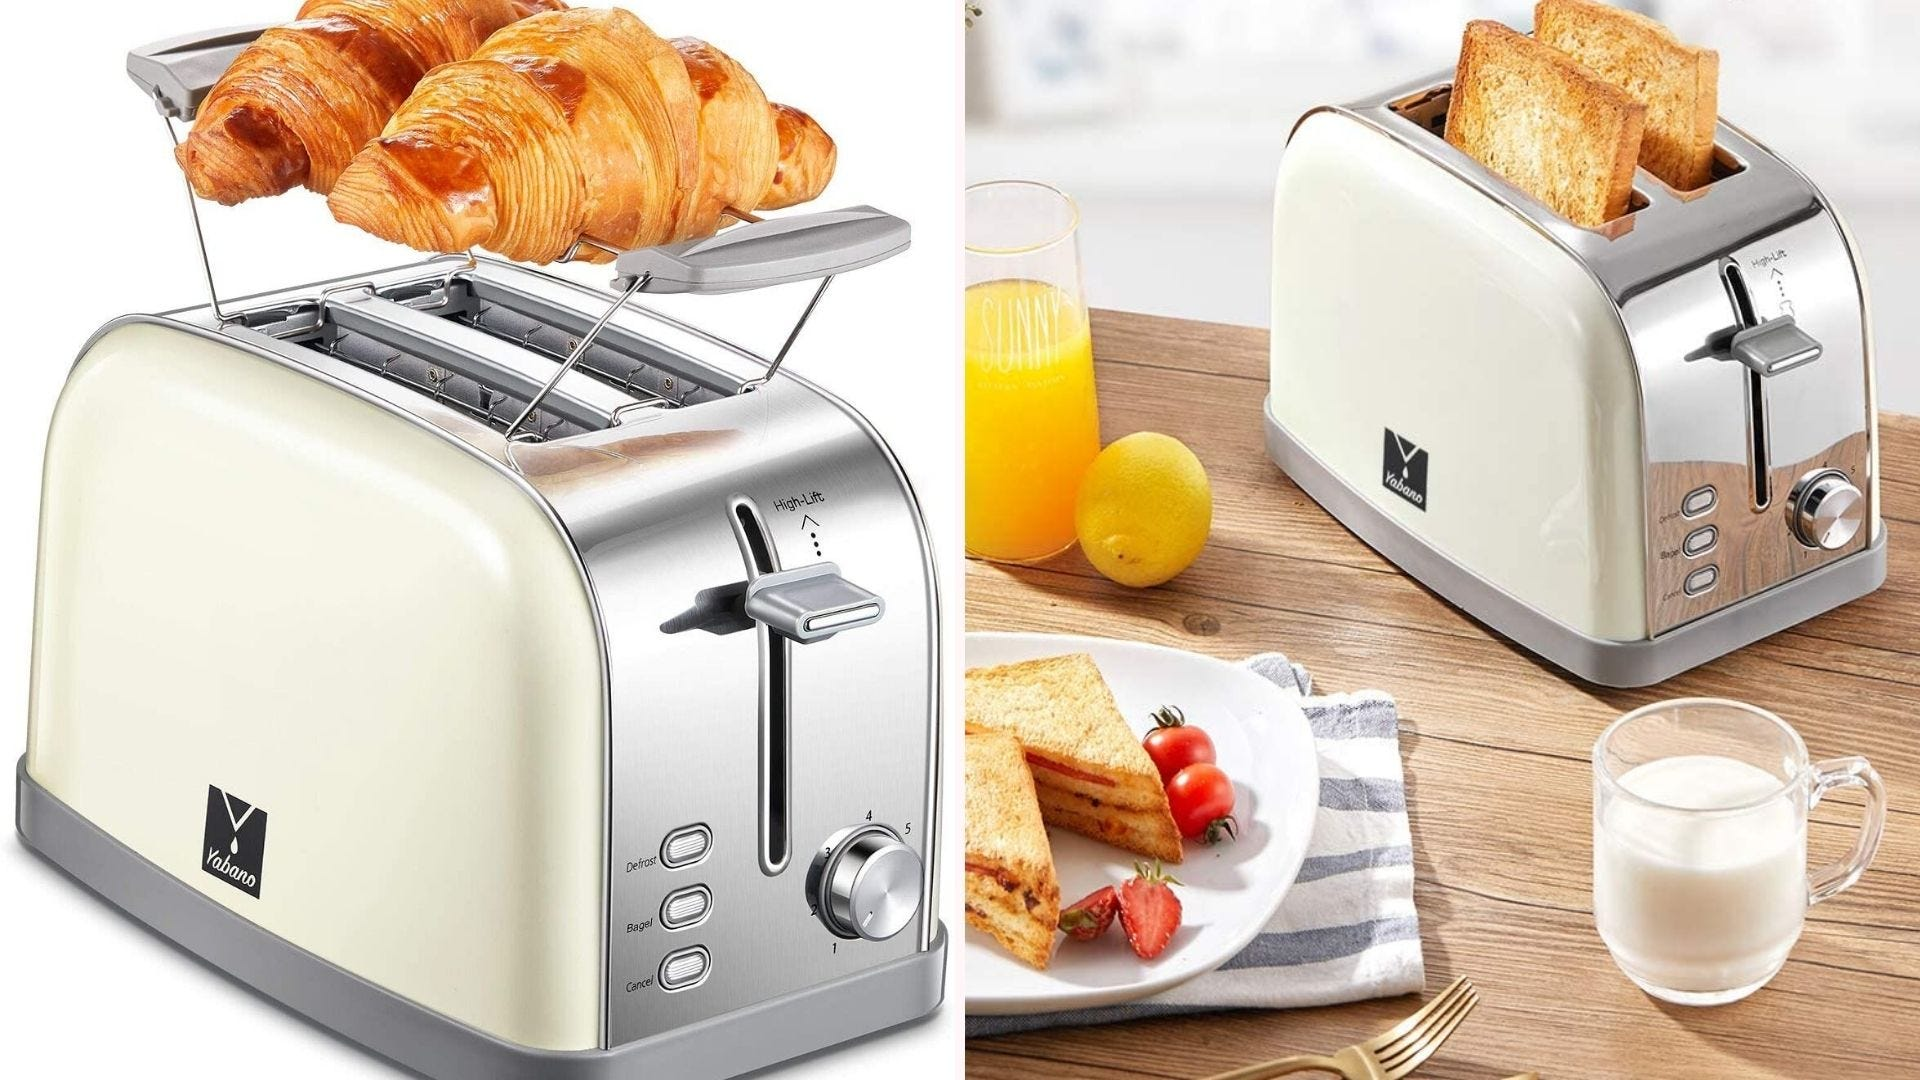 On the left, a silver toaster with cream-colored sides reheats two croissants that rest on an attached grill-rack above the toasting slots. On the right, the toaster sits on wooden kitchen counter surrounded by bread-oriented dishes.